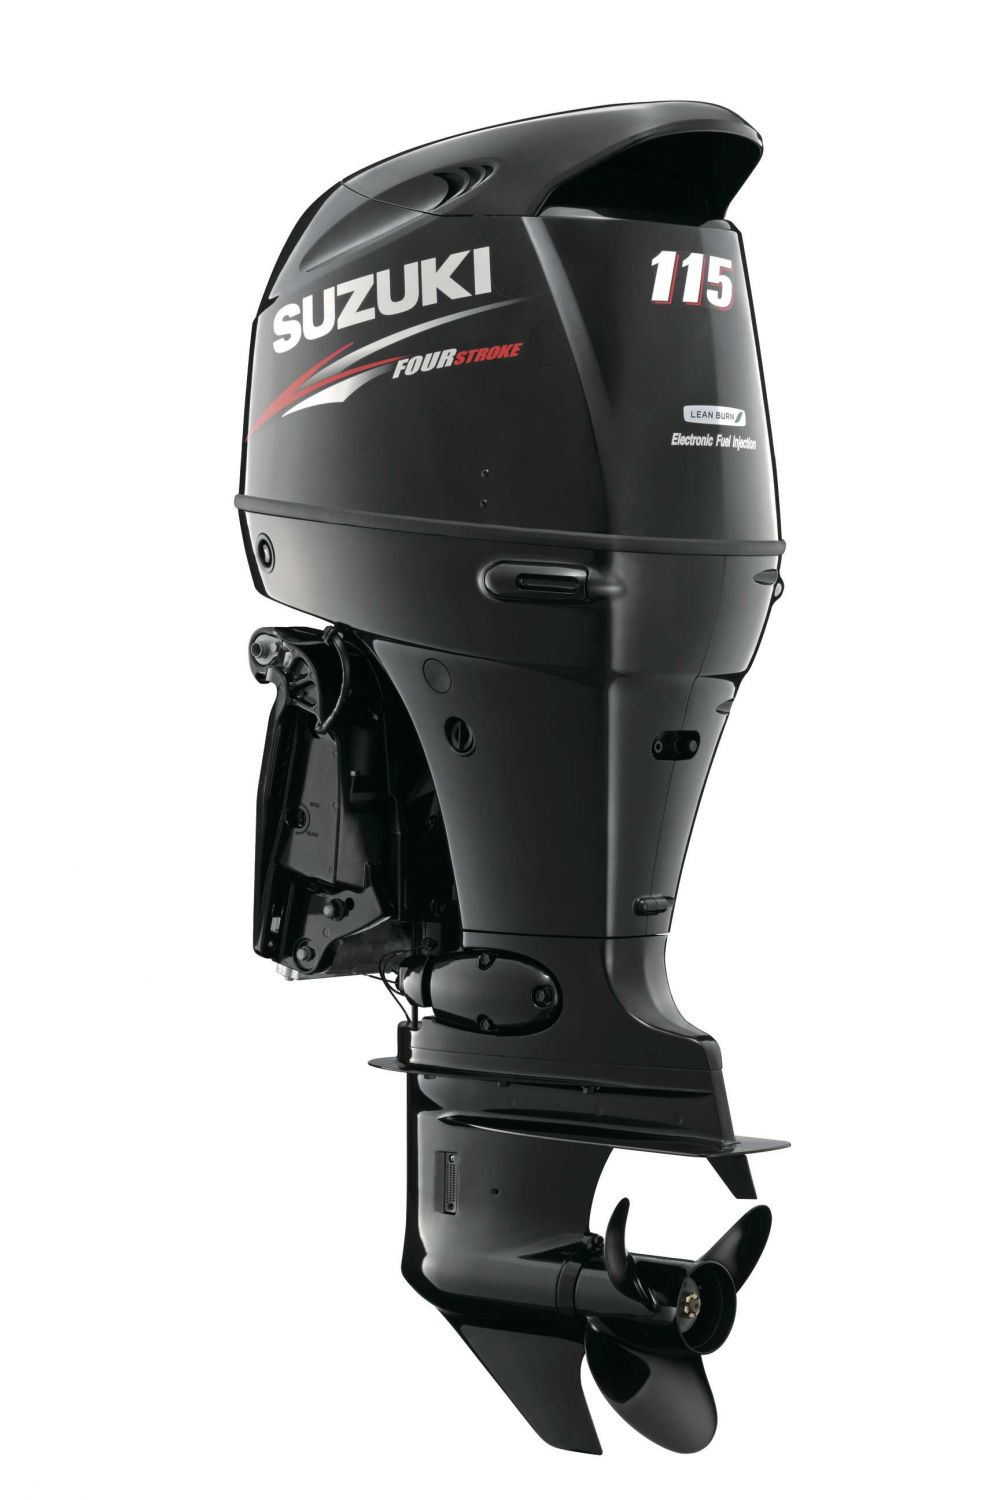 Suzuki DF115A four stroke marine outboard engine